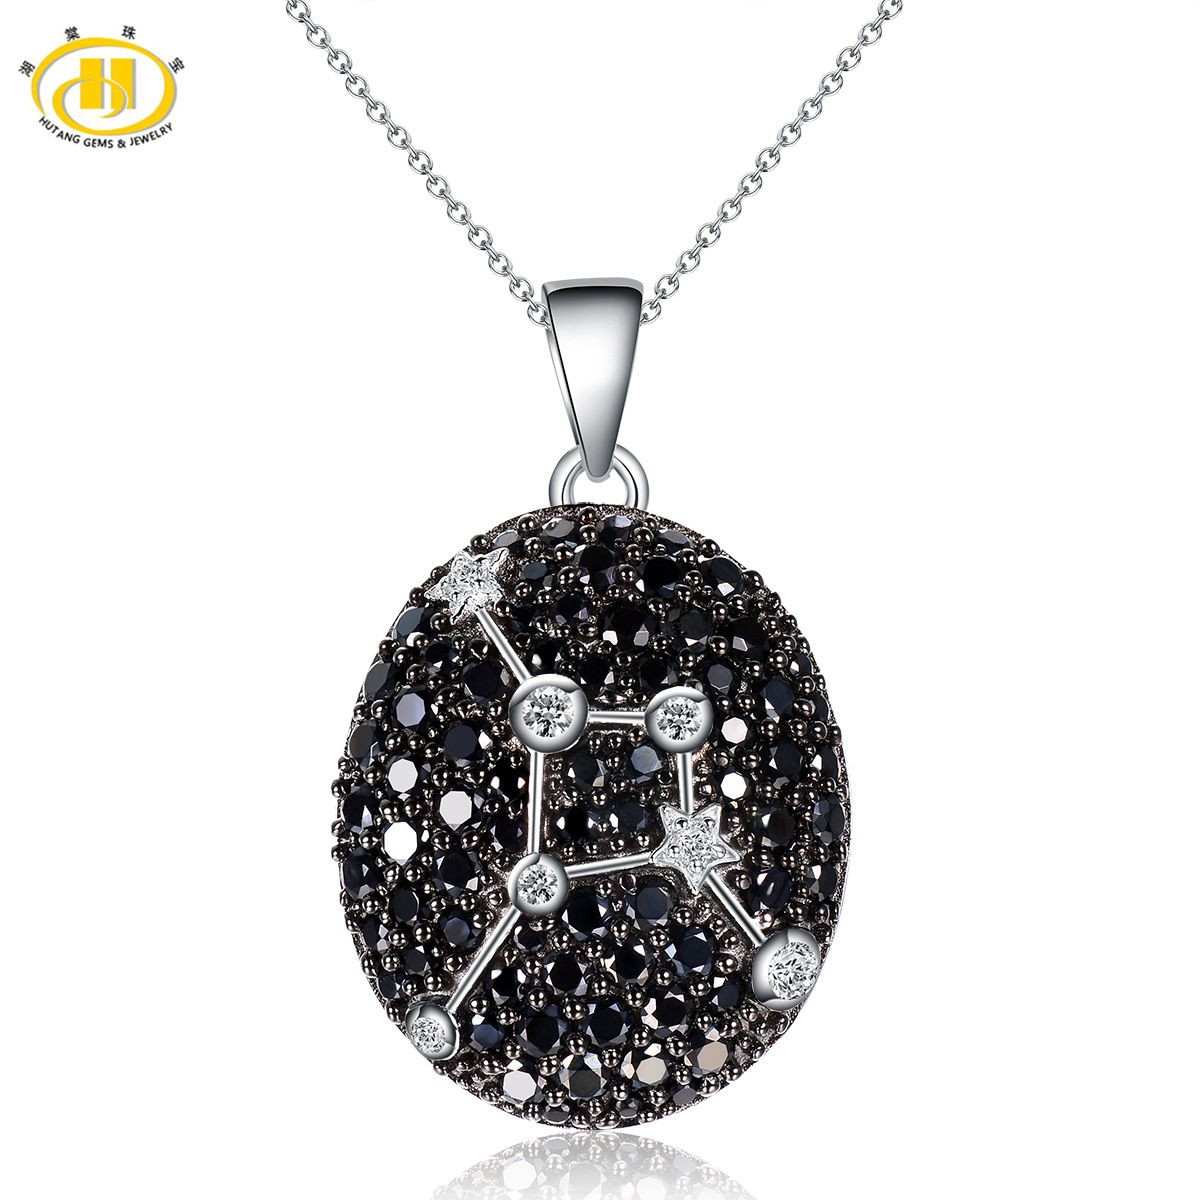 Hutang Cancer Constellation Black Spinel & White Topaz Pendant Solid 925 Sterling Silver Necklace Free Chain For Boy And Girl